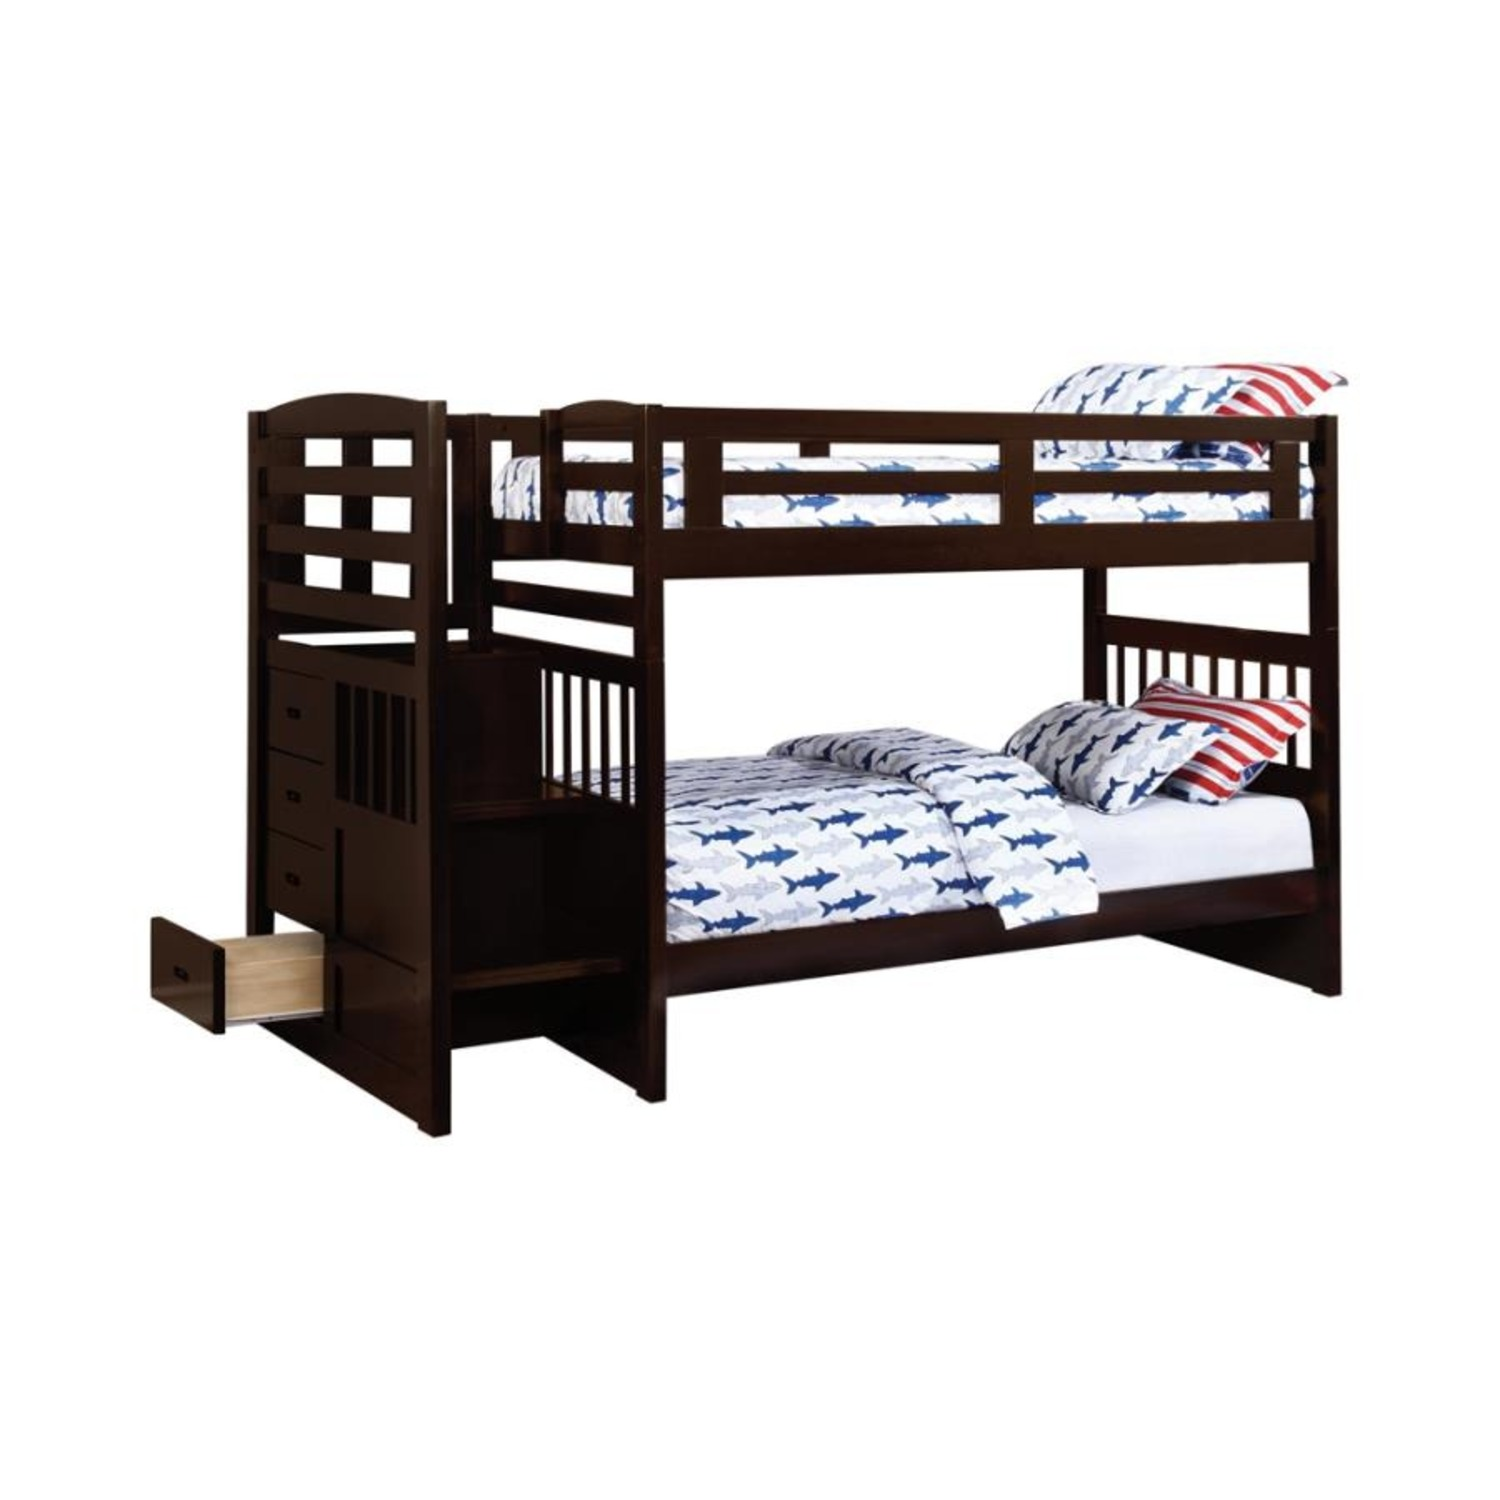 Twin Bunk Bed In Cappuccino W/ Storage Staircase - image-1